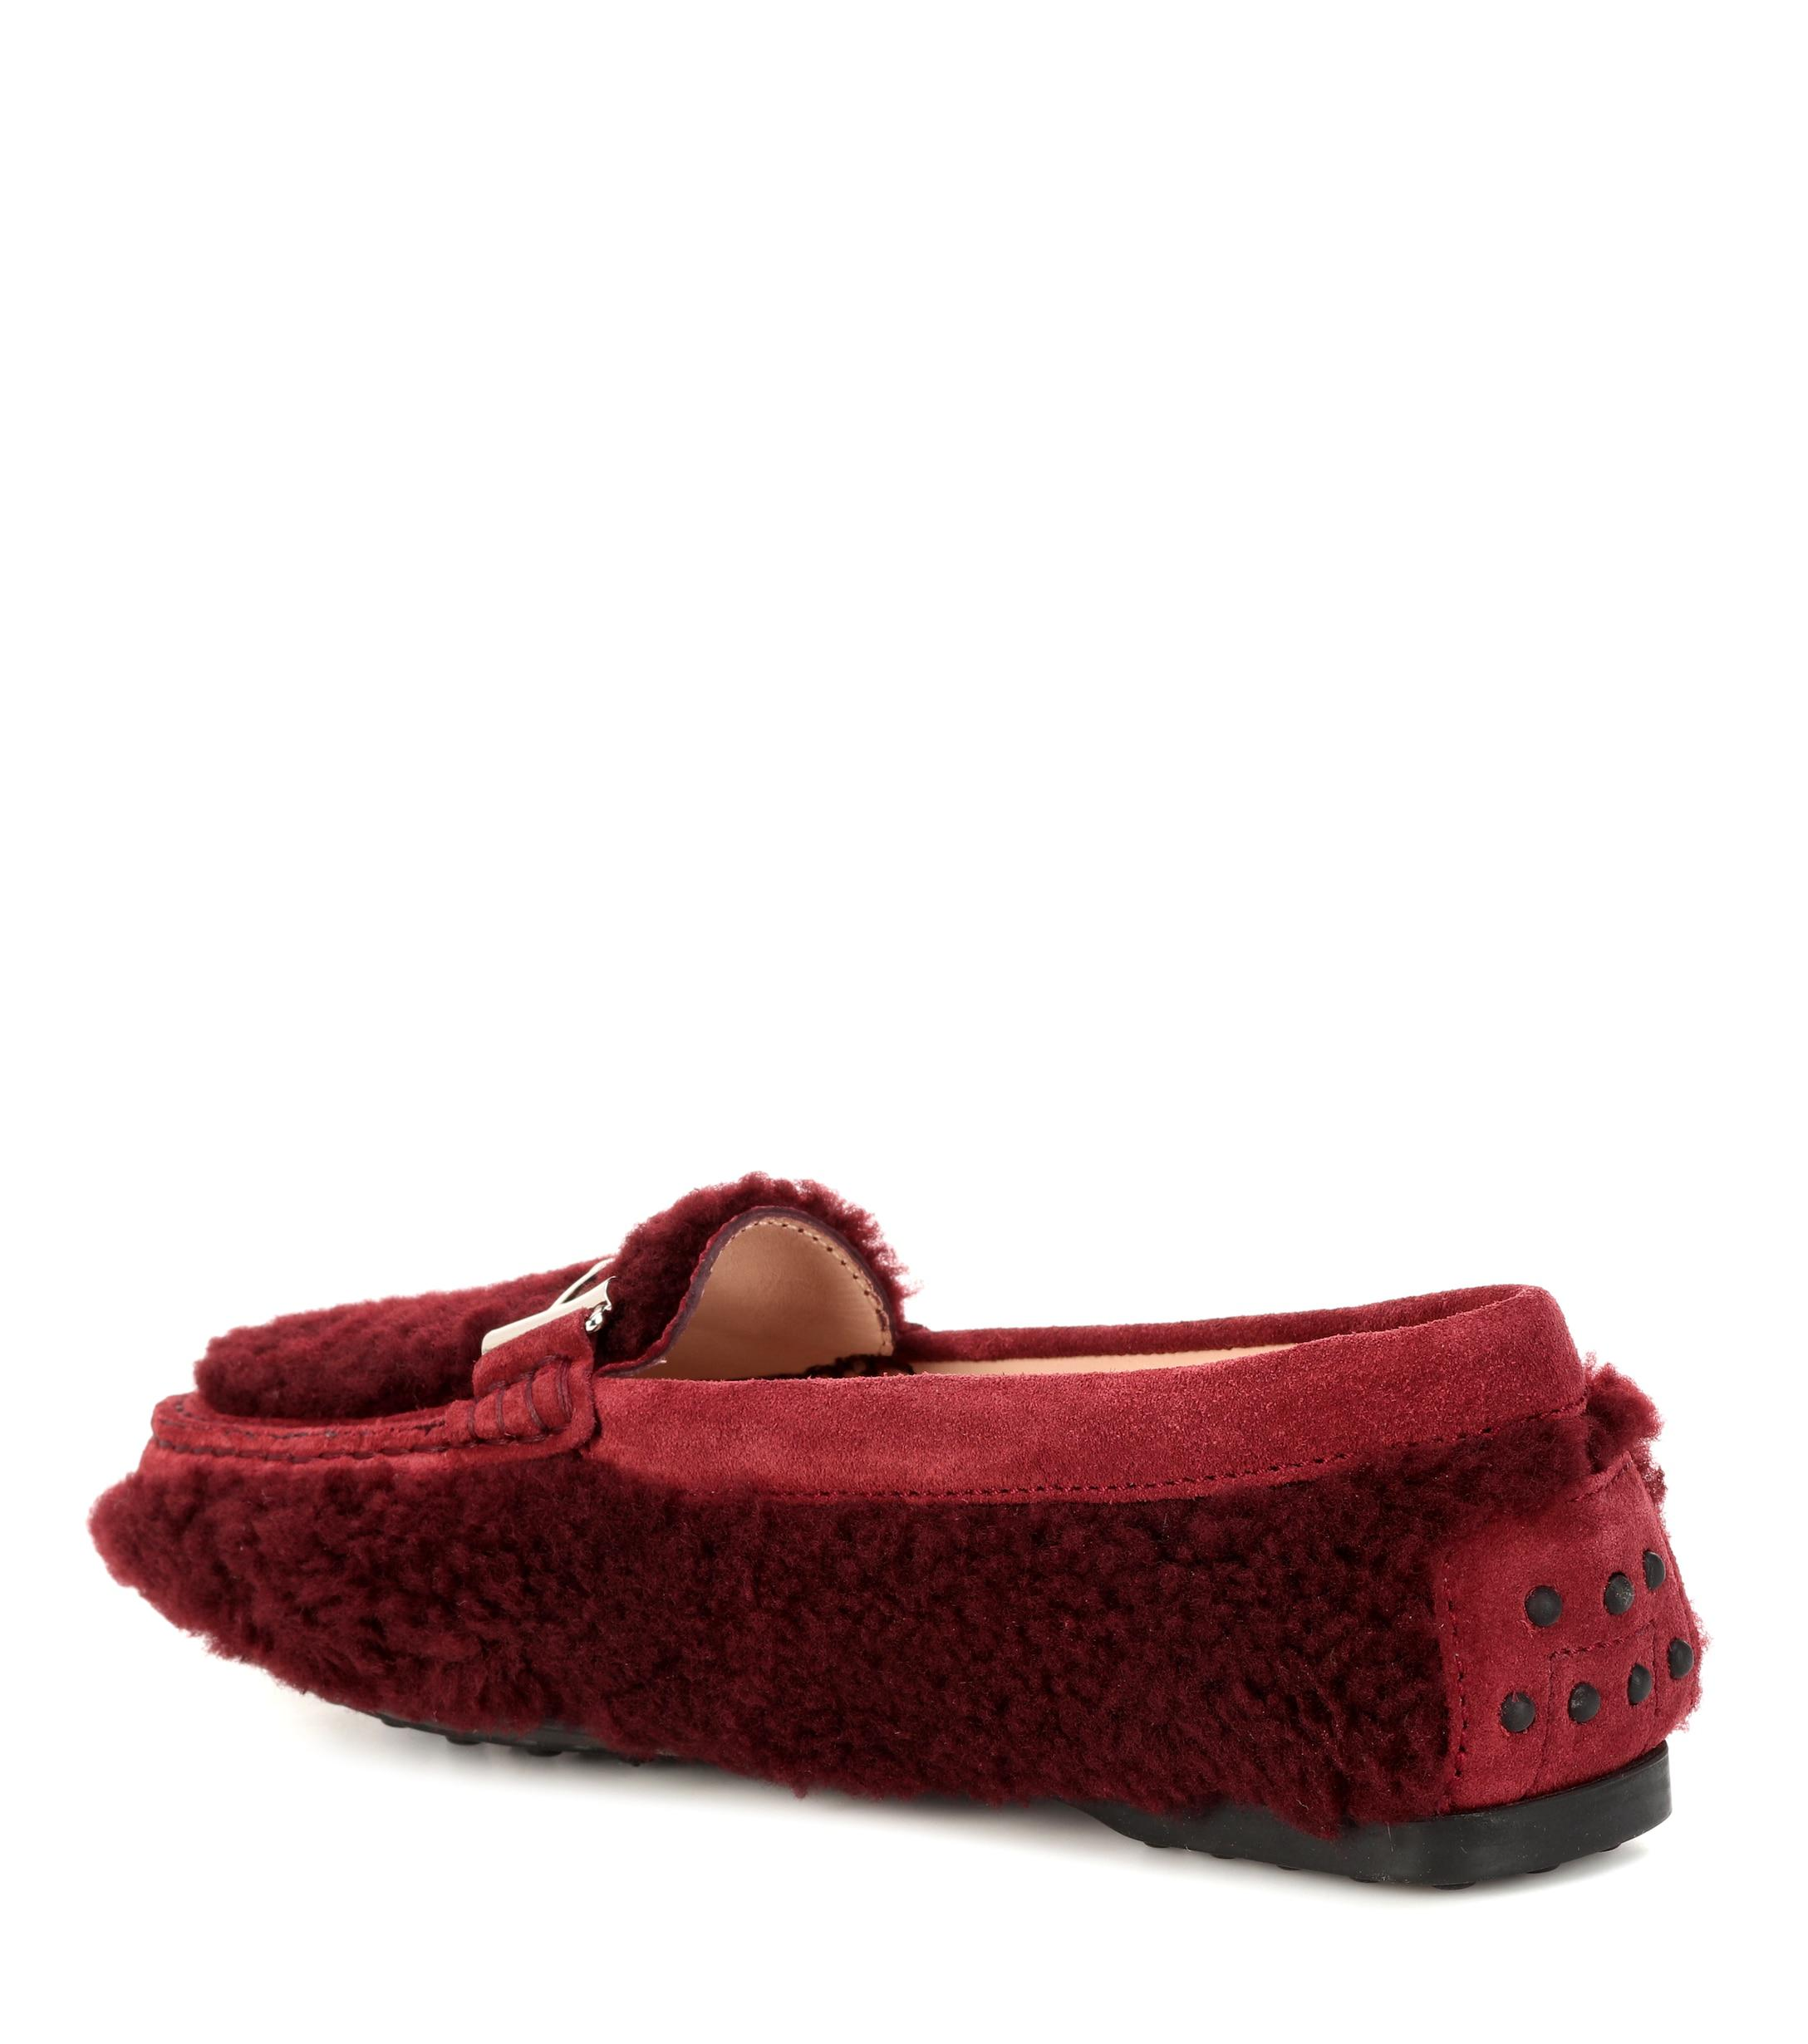 8363368a948 Tod s - Red Double T Shearling Loafers - Lyst. View fullscreen